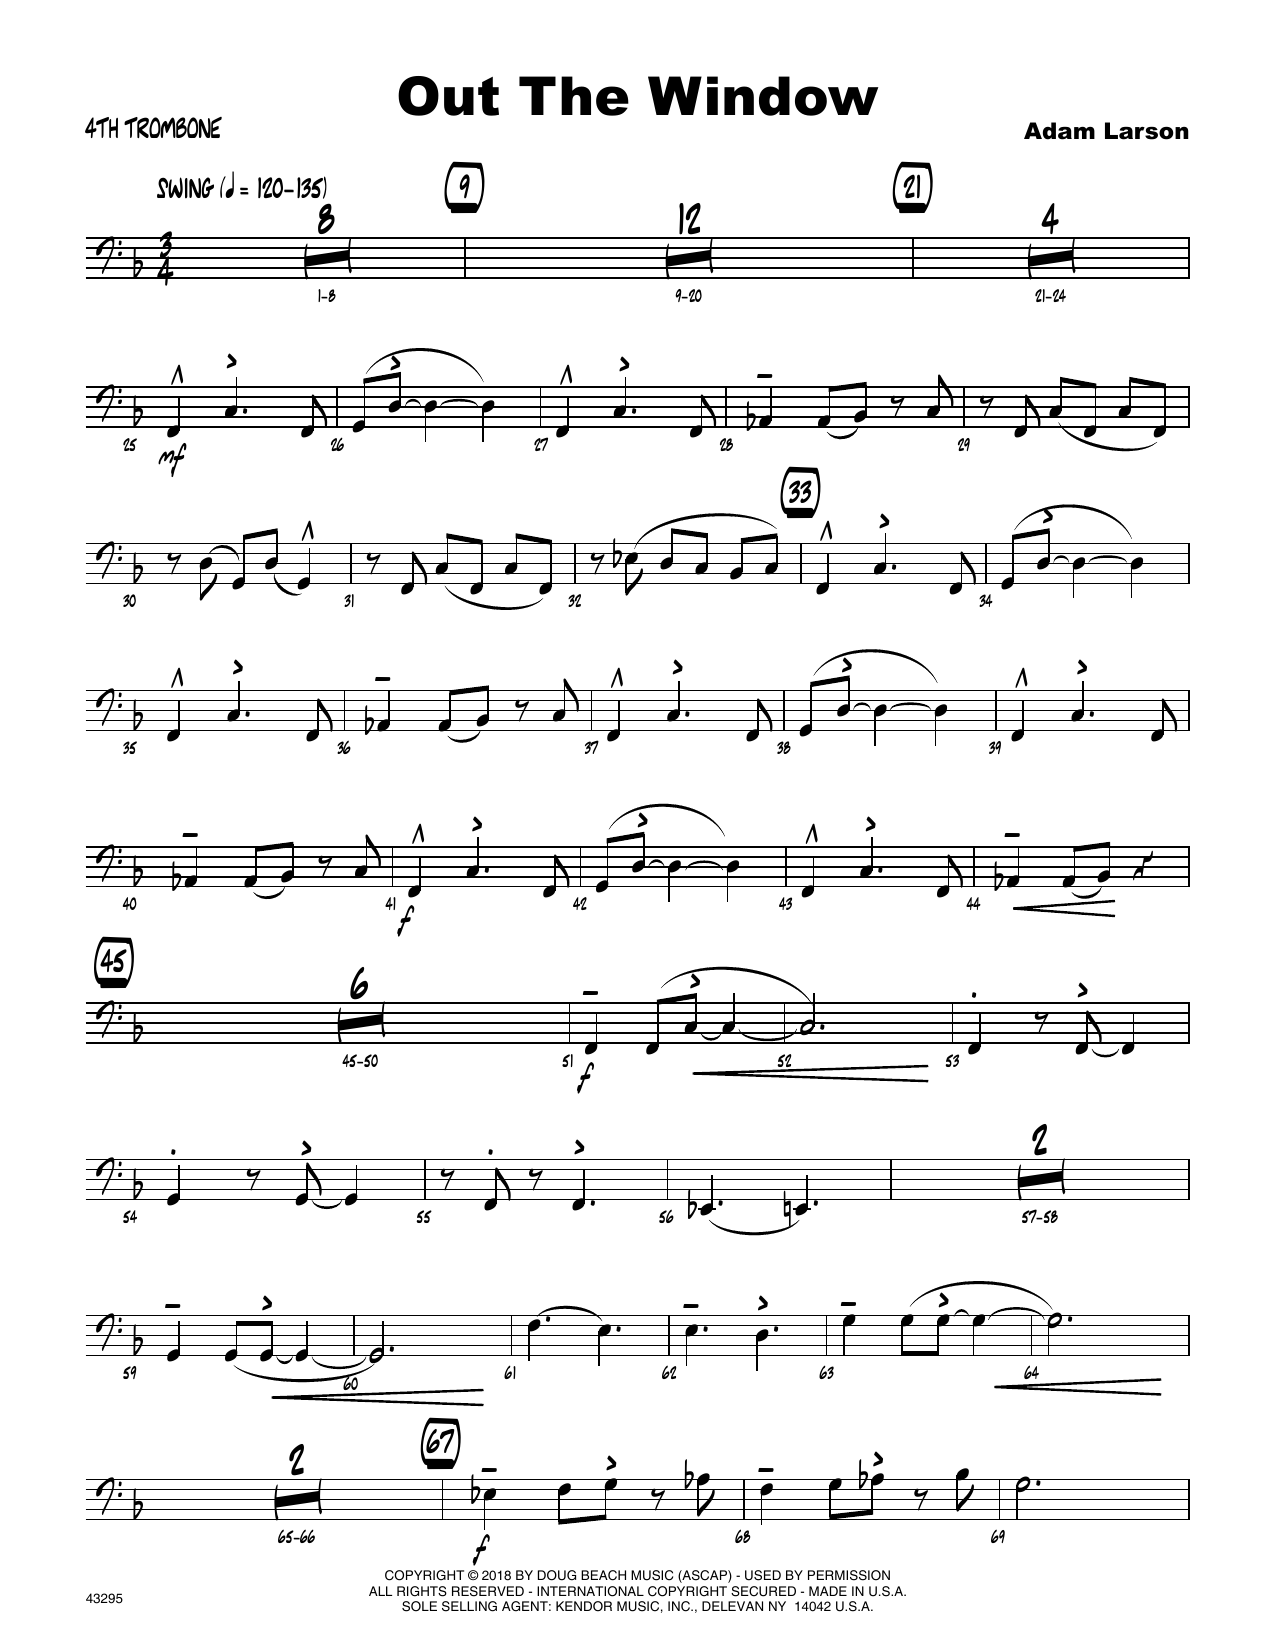 Adam Larson Out The Window - 4th Trombone sheet music preview music notes and score for Jazz Ensemble including 3 page(s)